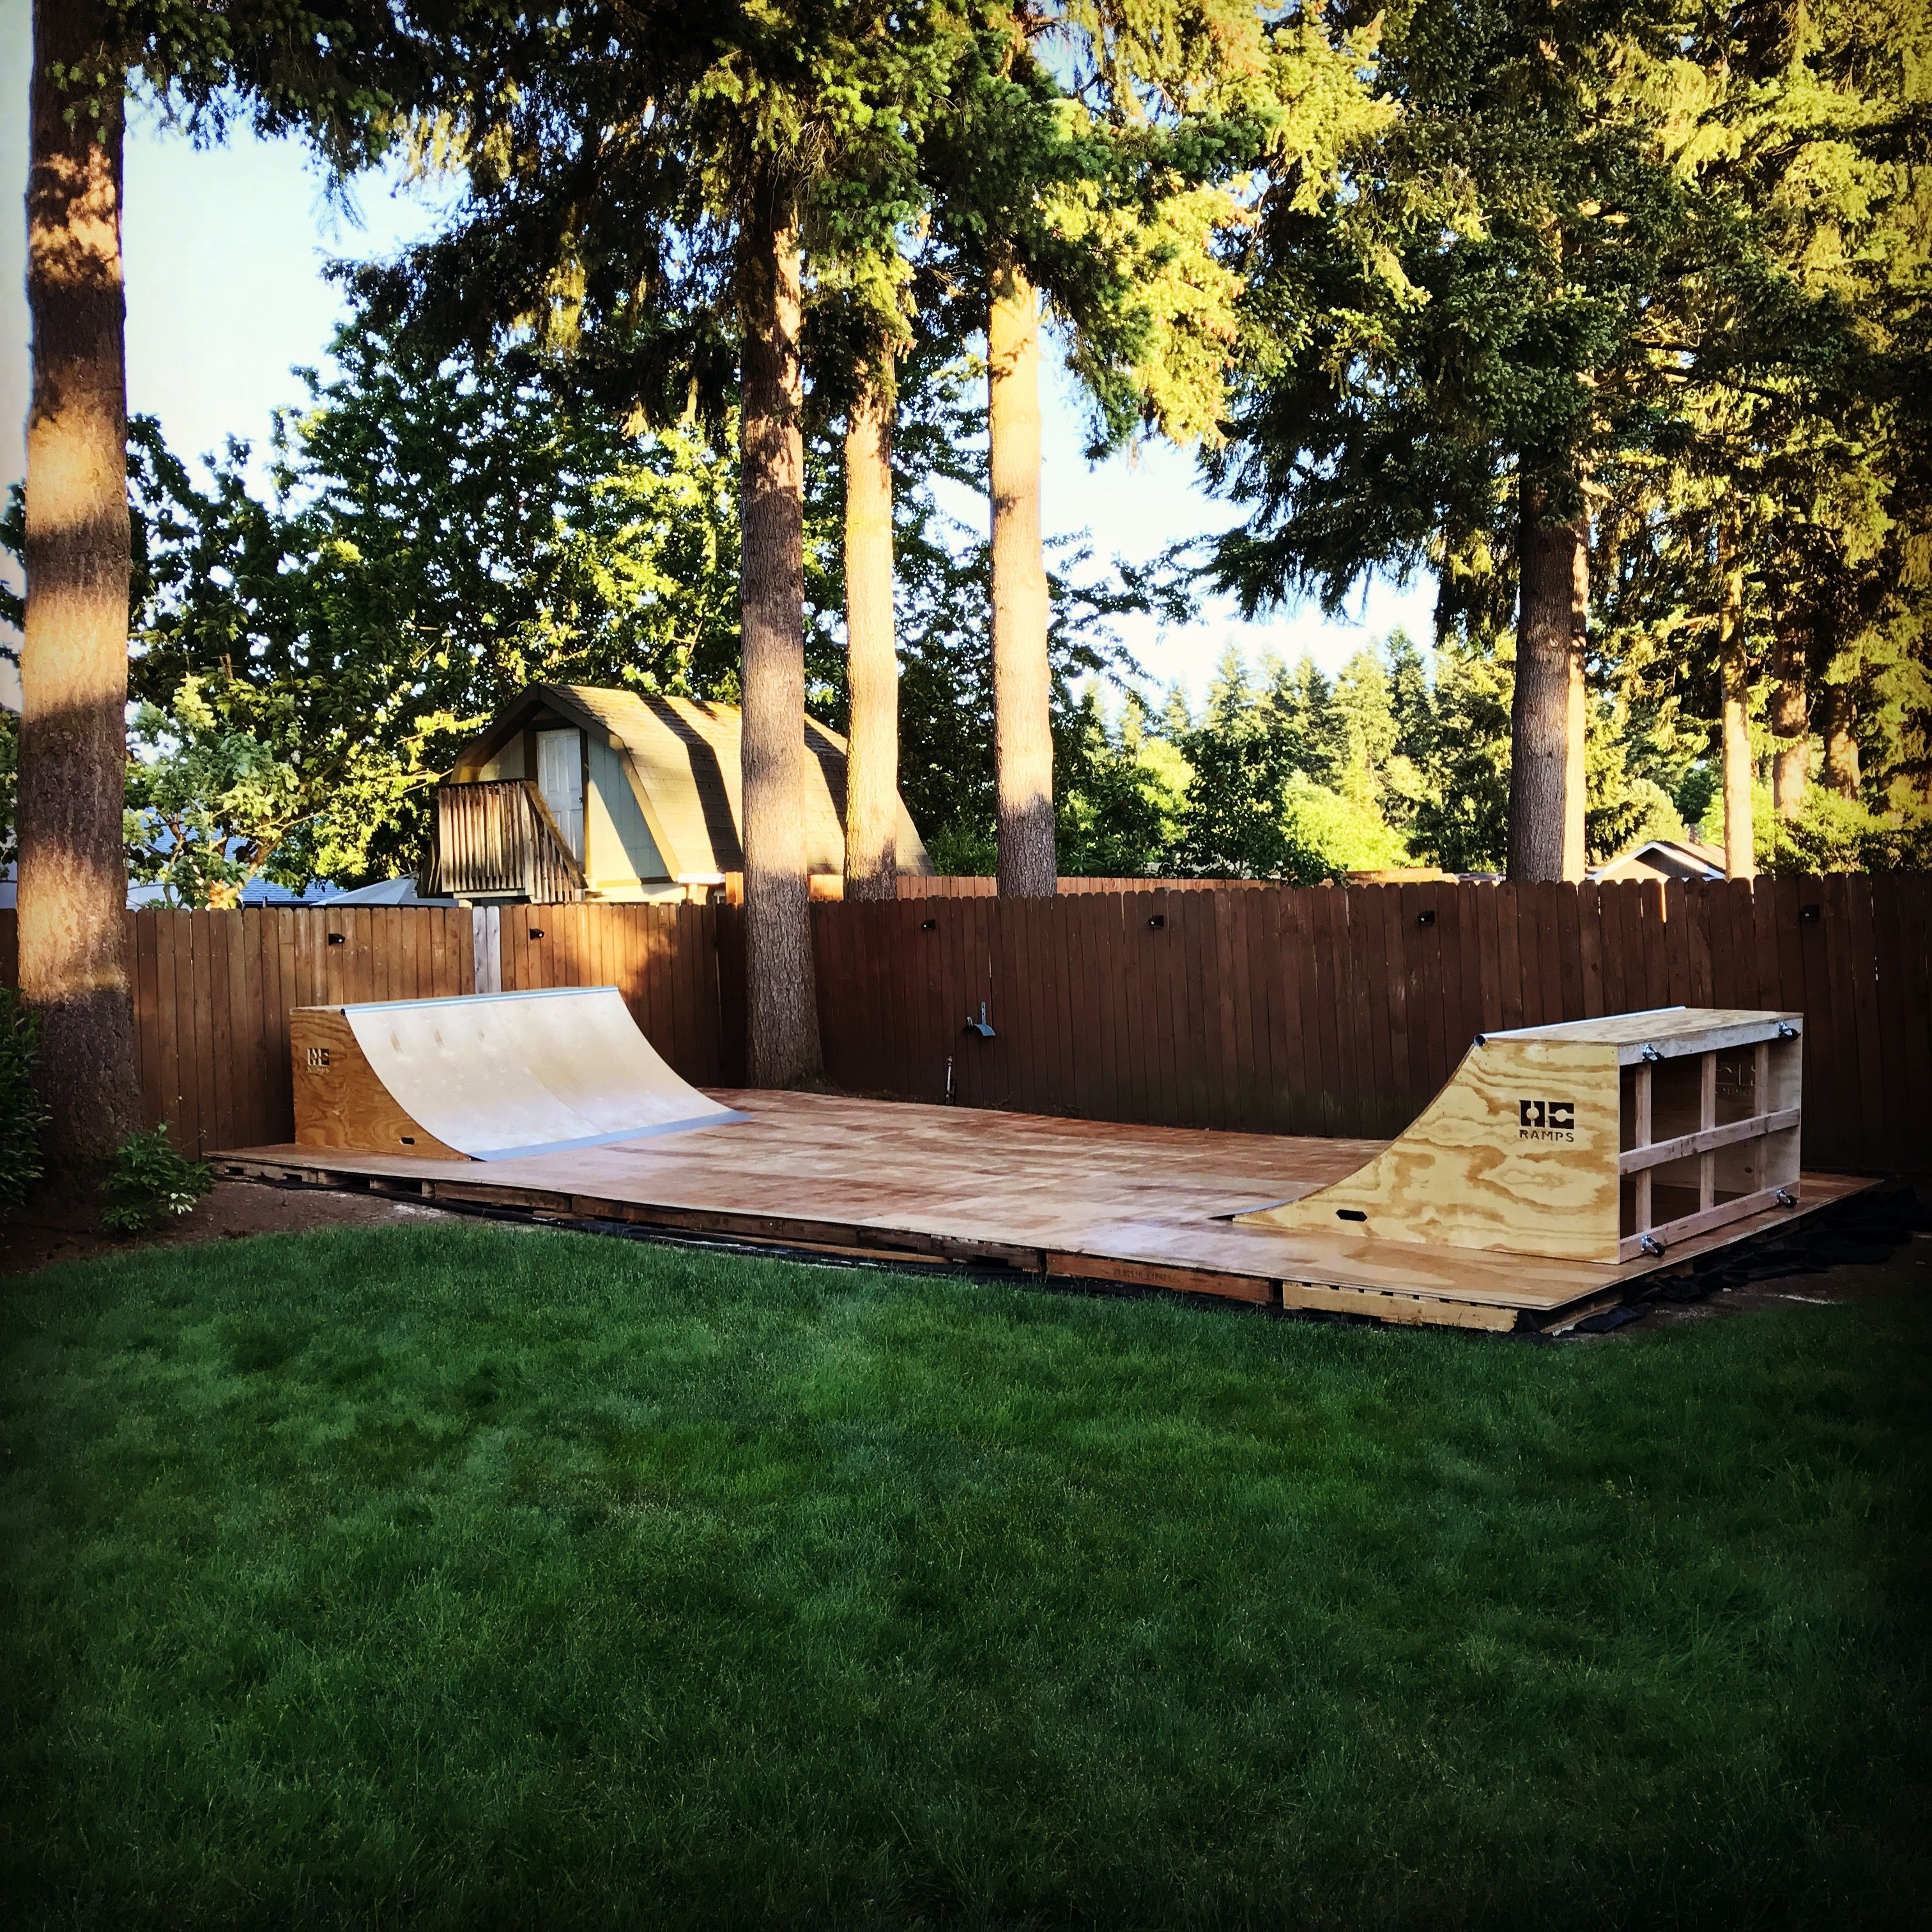 Backyard Bmx Ramps backyard skate ramp diy style | homey | pinterest | skate ramp